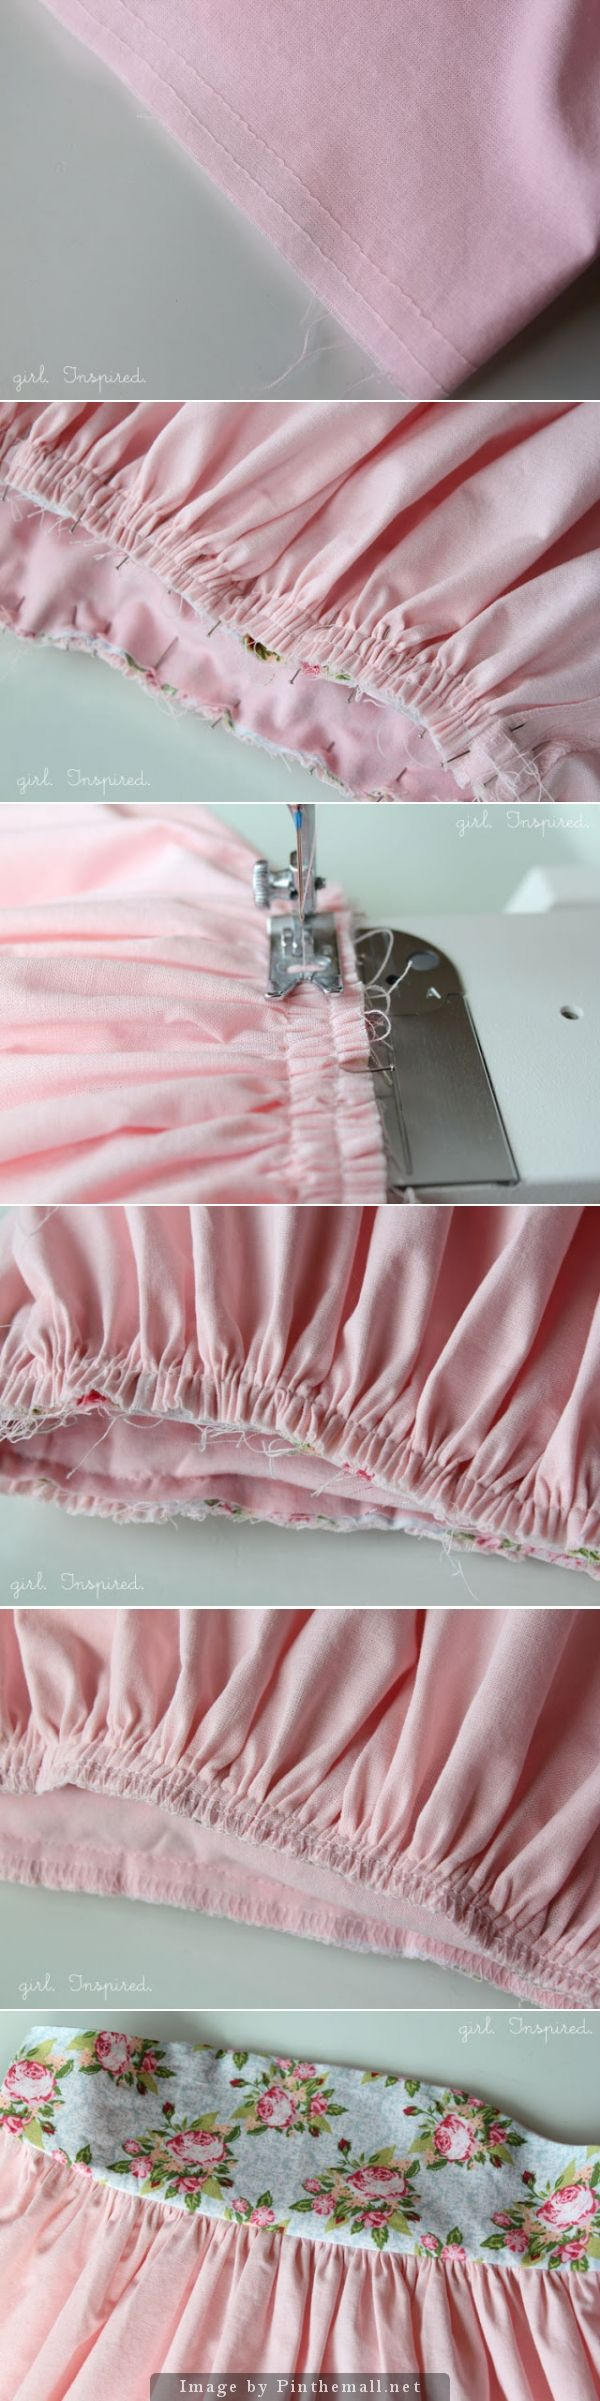 How to make a tidy business of your gathered skirt: Stefanie's method for beautiful gathers. Baste twice and line up your needle so that you can stitch directly in the center of your two rows of gathering stitches, which you remove once skirt is sewn to the bodice. Step by step: gathering your ruffles, pinning, sewing to bodice (or waist band) and serging. ~~ http://www.projectrunplay.com/2012/10/guest-judge-stefanie-from-girlinspired.html